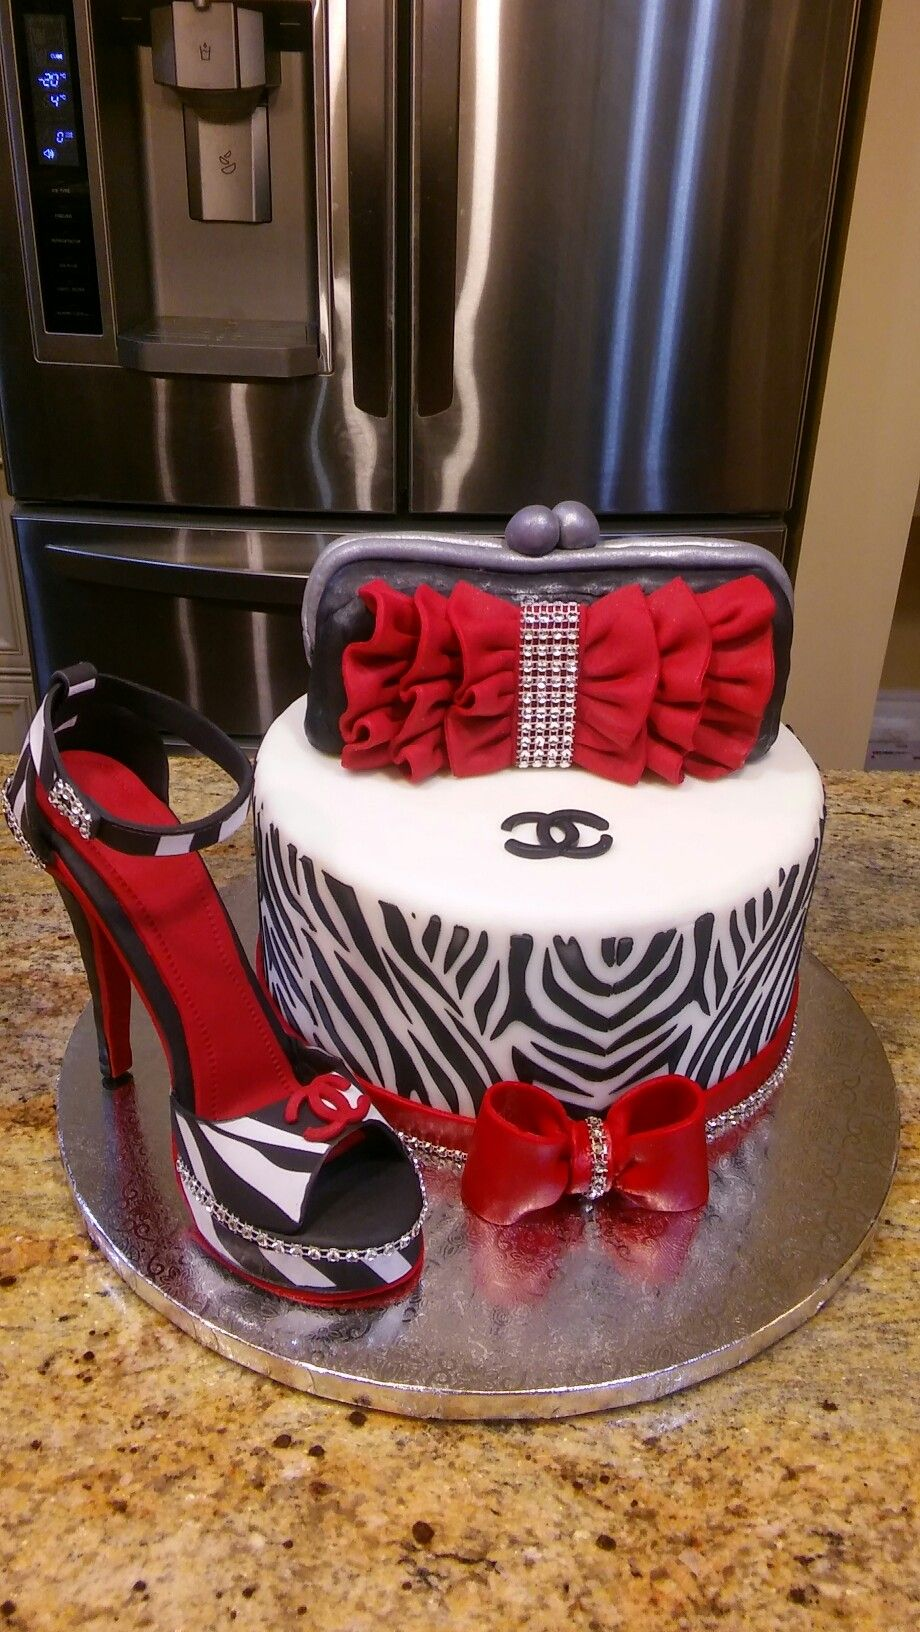 Sexy Hot Pink And Black High Heel Shoe Cake For That Fashionable